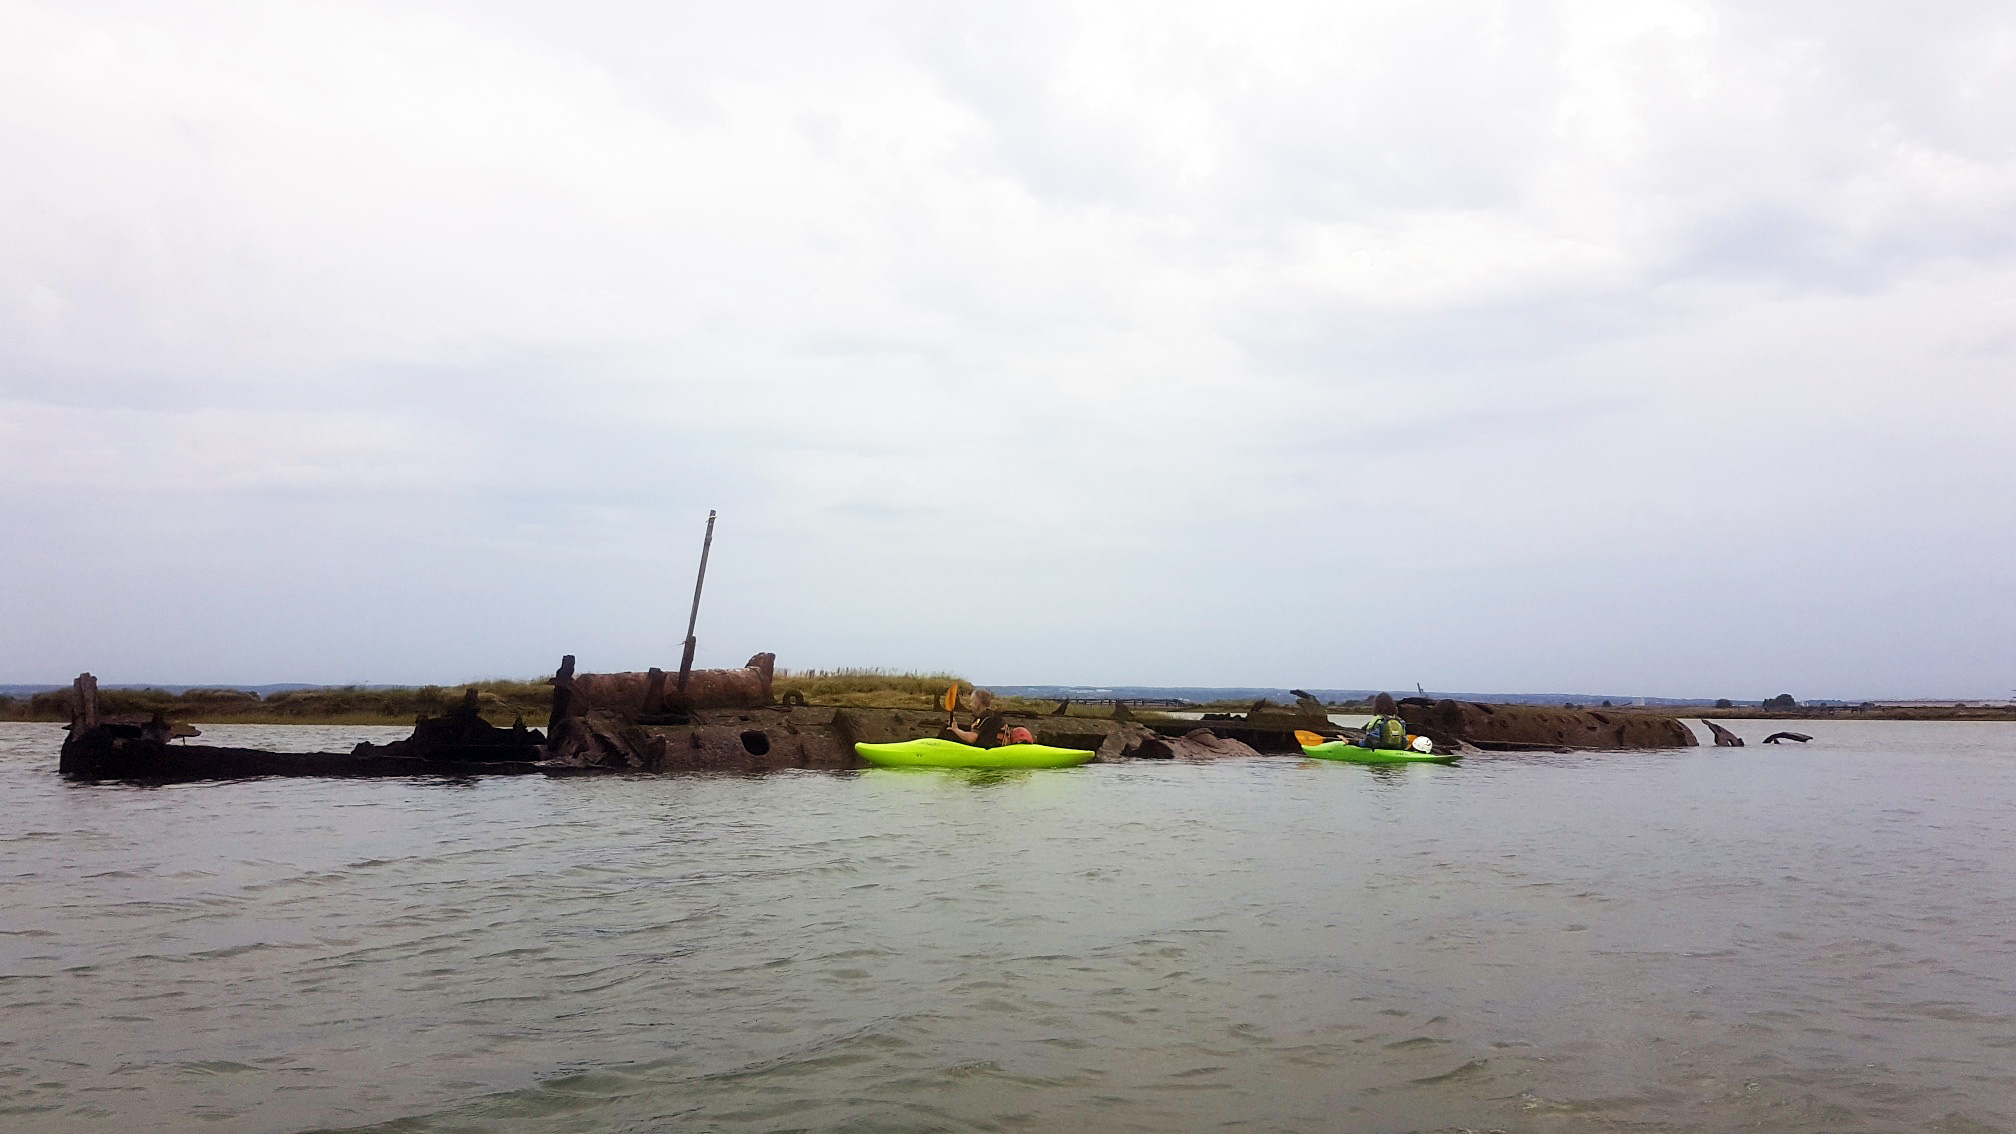 Kayakers alongside the wreck of German U-boat UB122, a submarine found in the River Medway estuary.